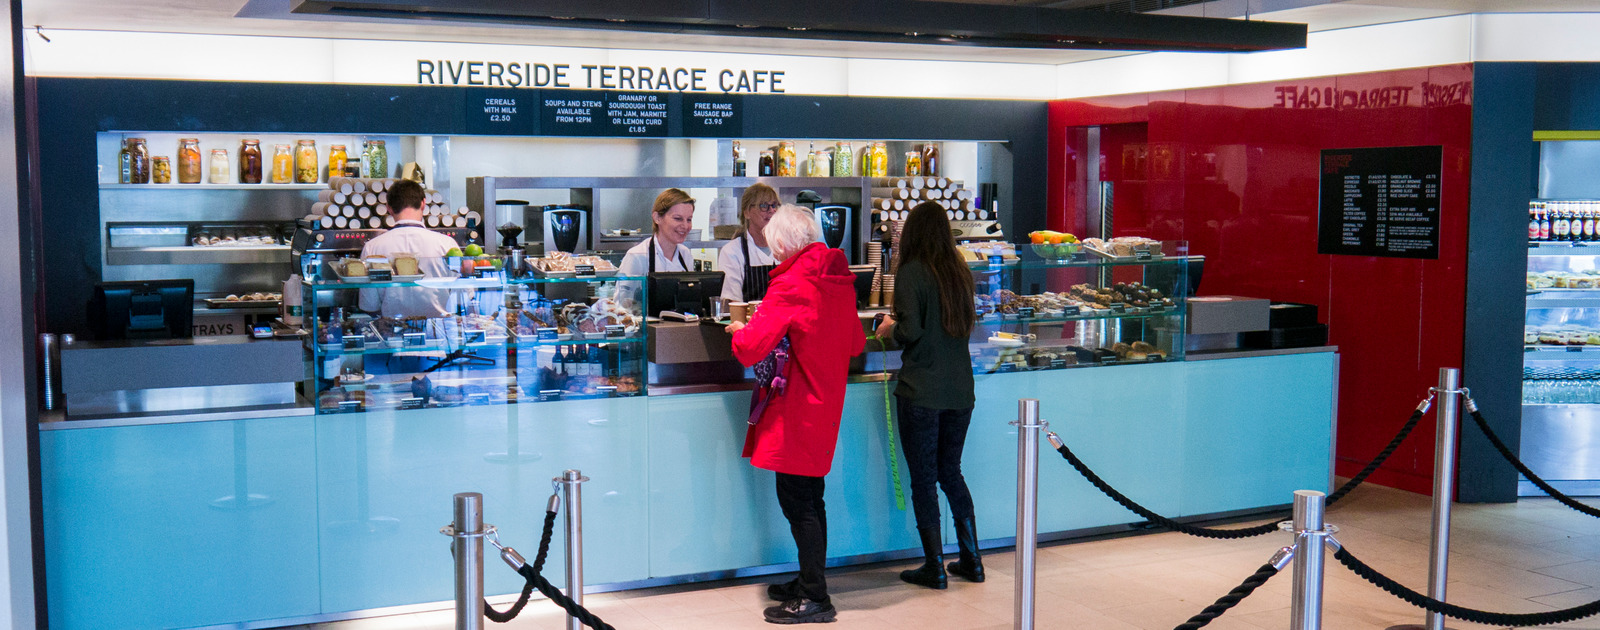 Interior view of the Riverside Terrace Cafe at the Southbank Centre